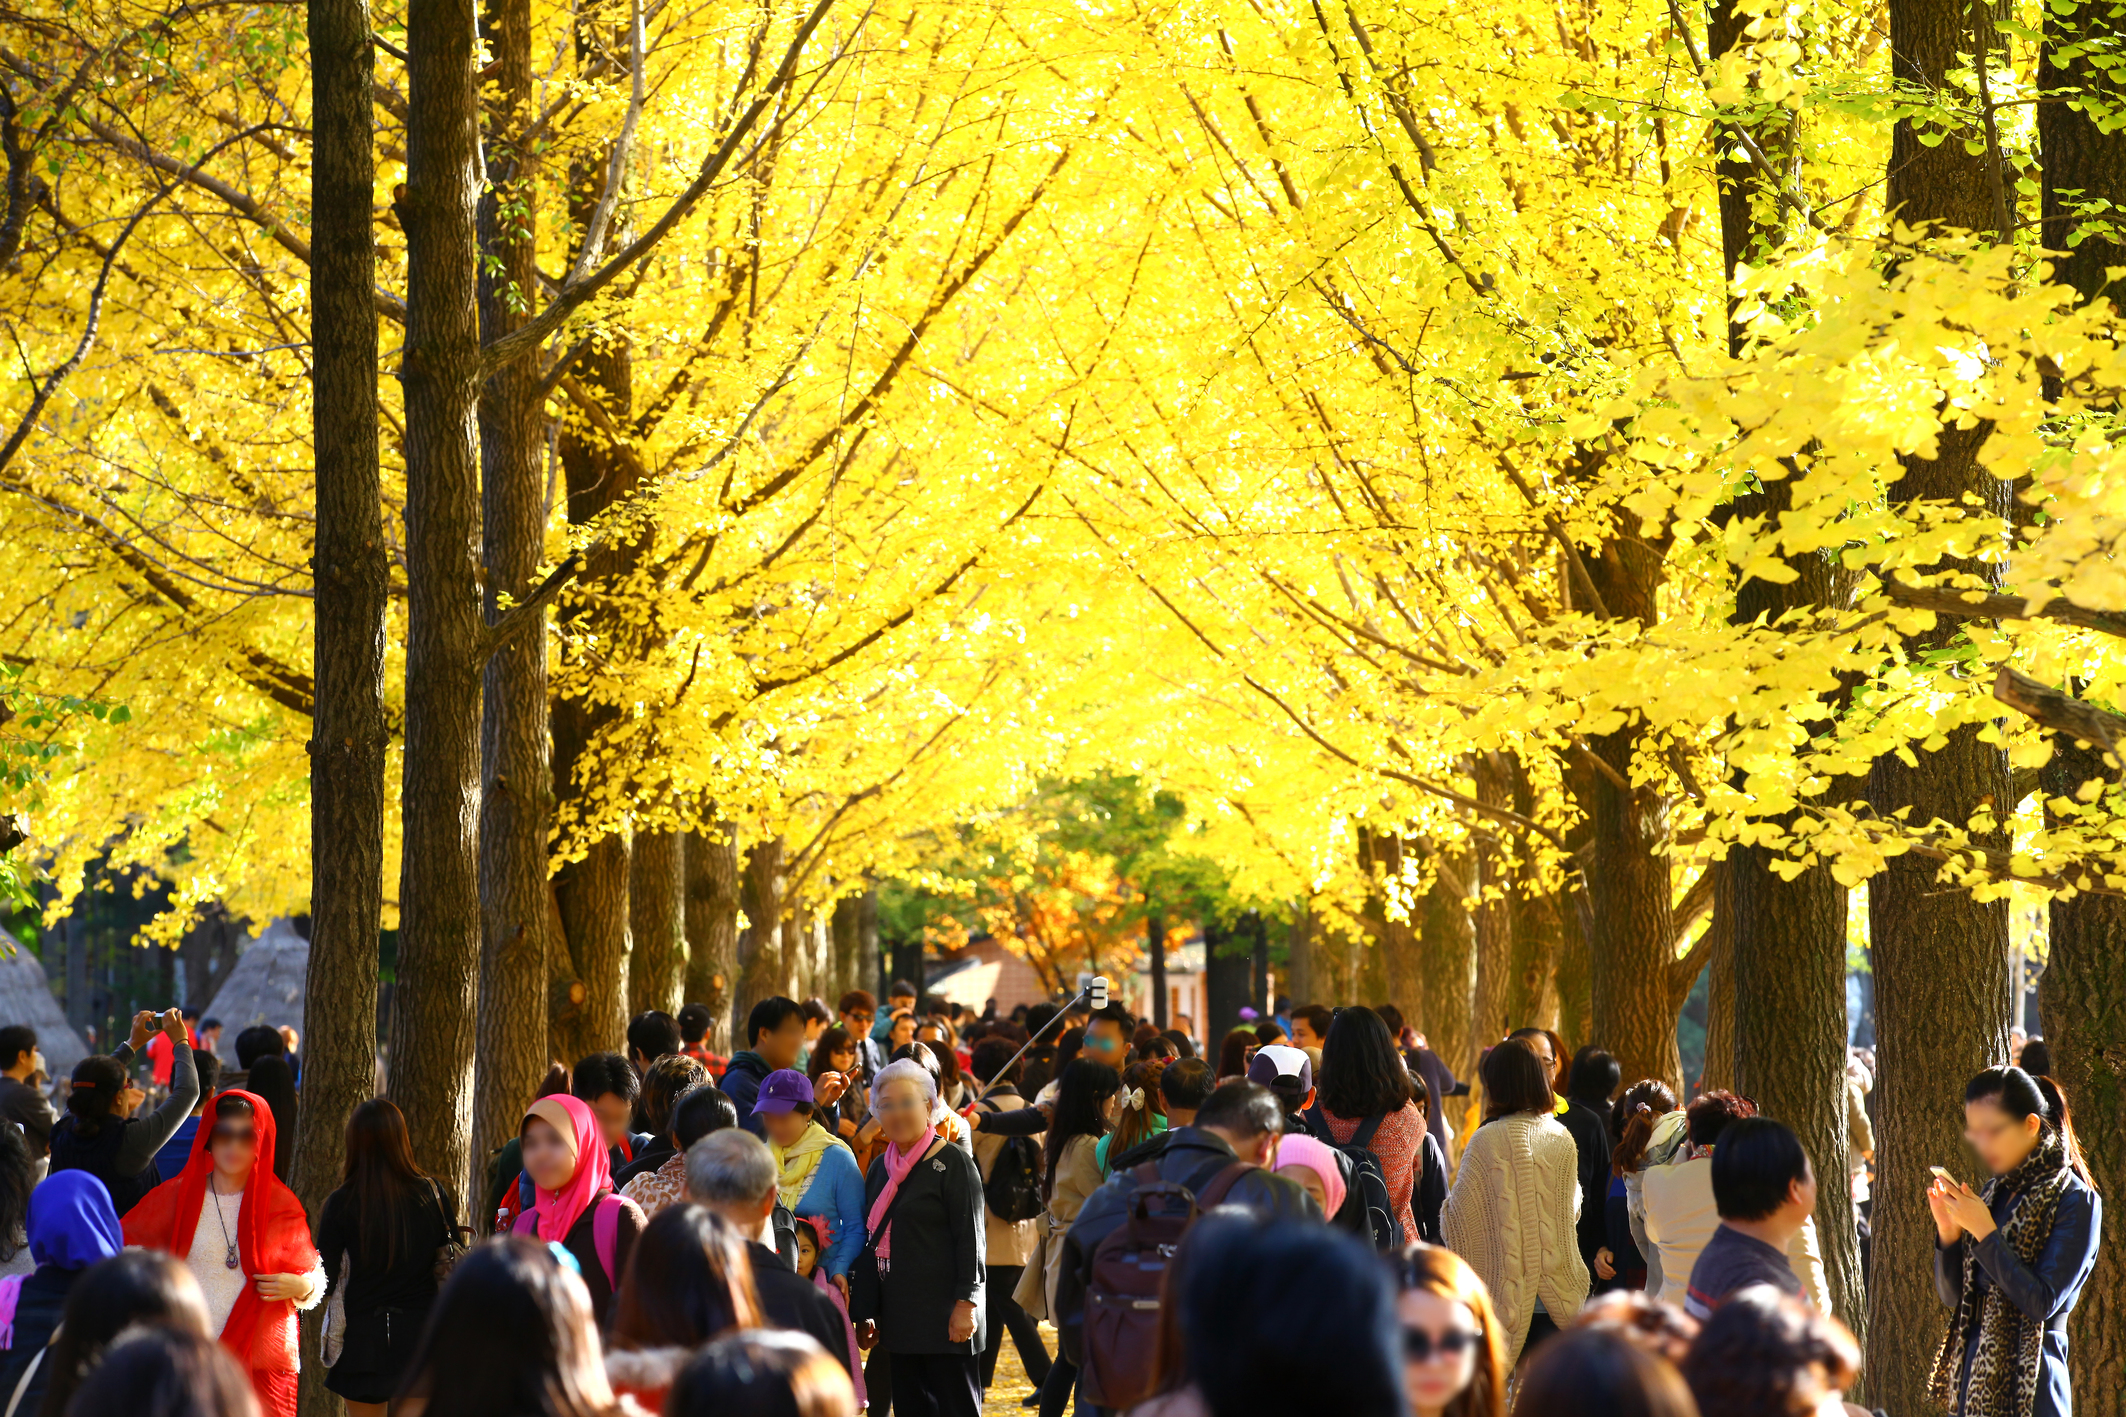 Nami Island, famous for its beautiful tree-lined roads